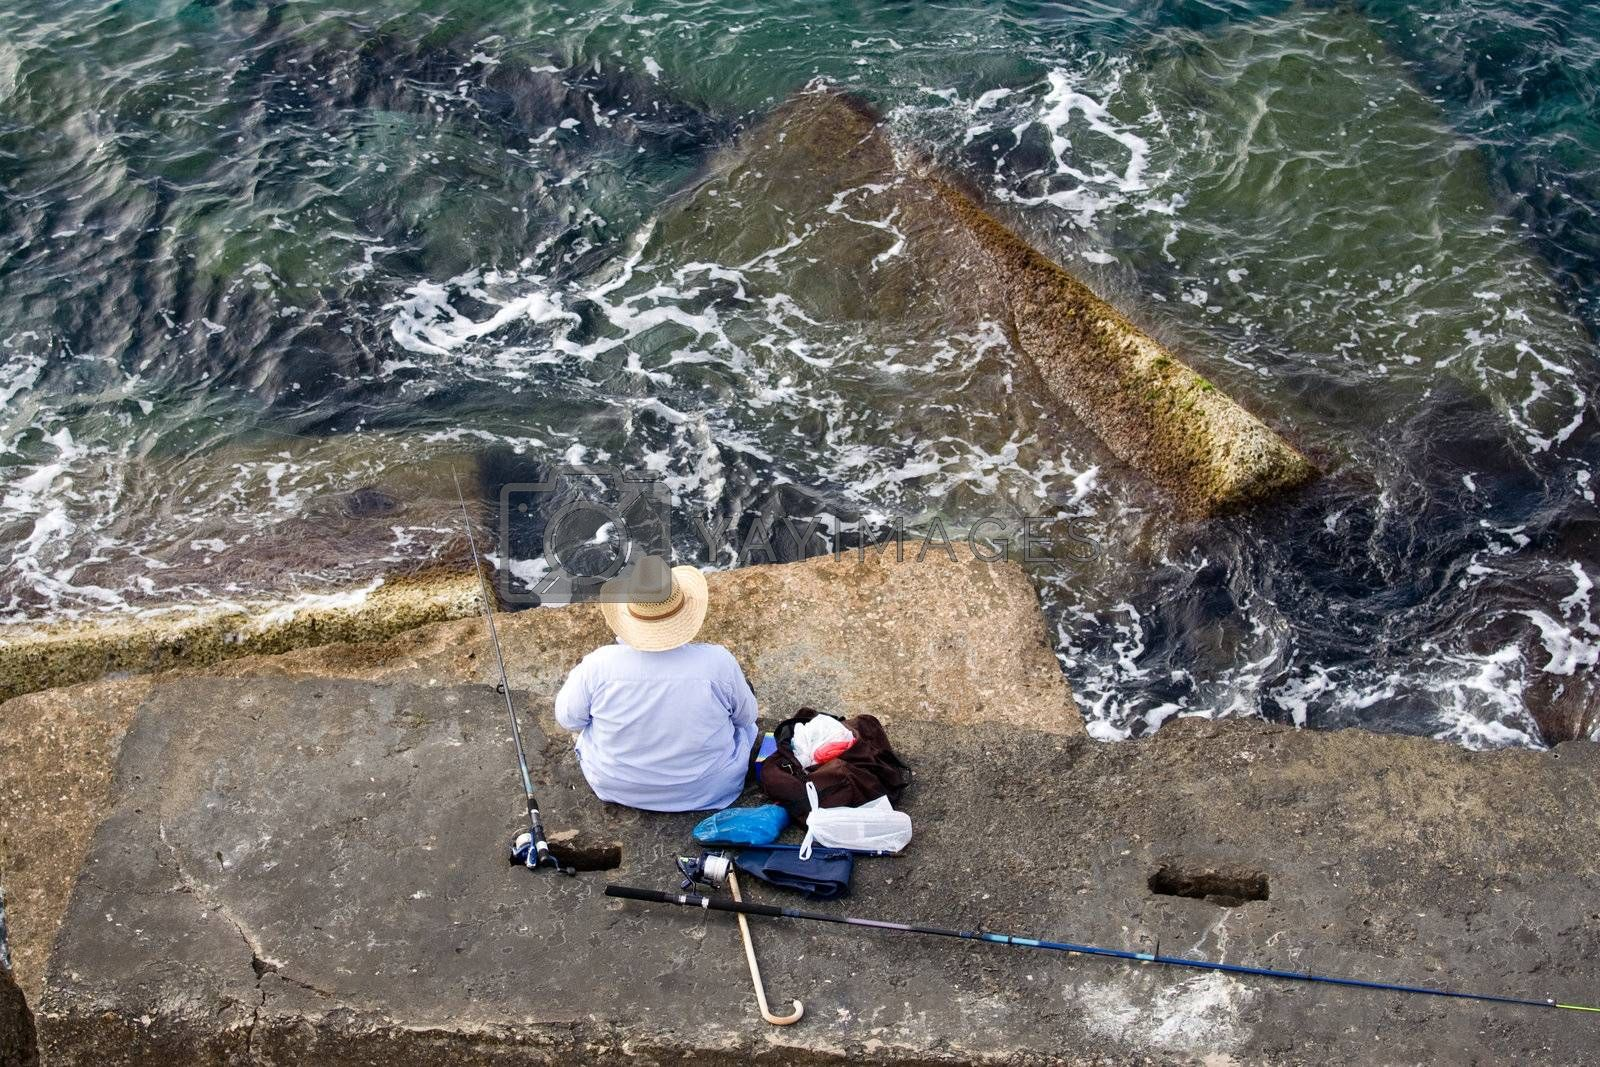 Fisherman in hat is sitting on the stone and fishing, top horizontal view